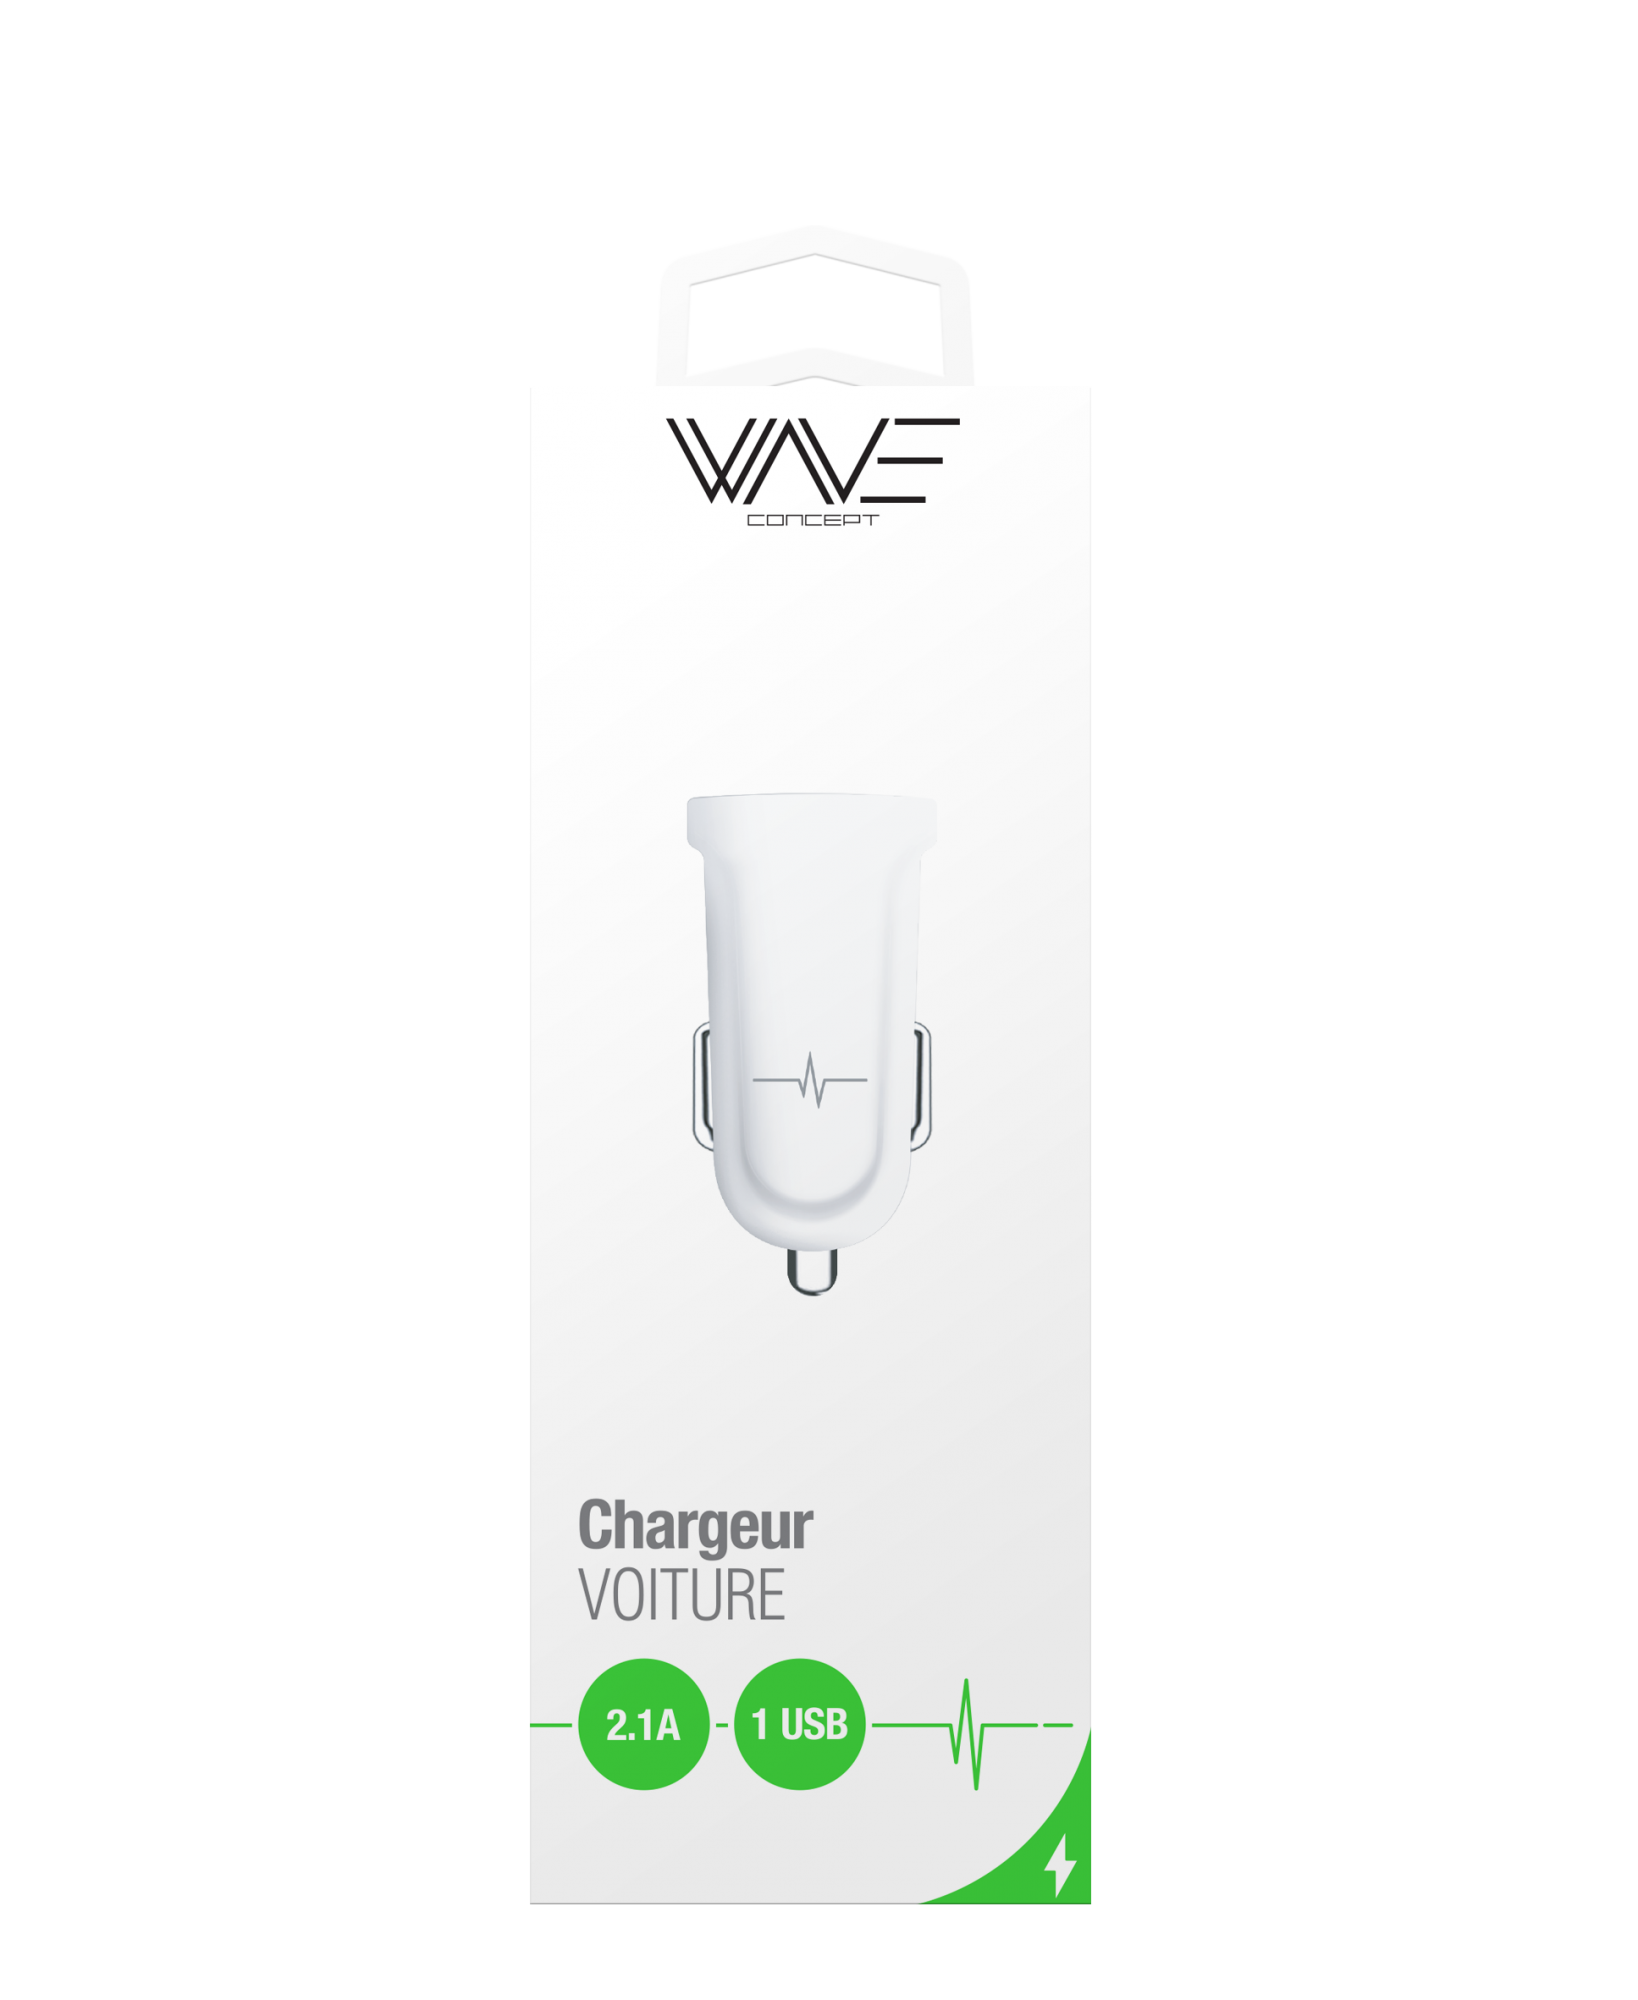 Chargeur Voiture 1 port USB 2.1A